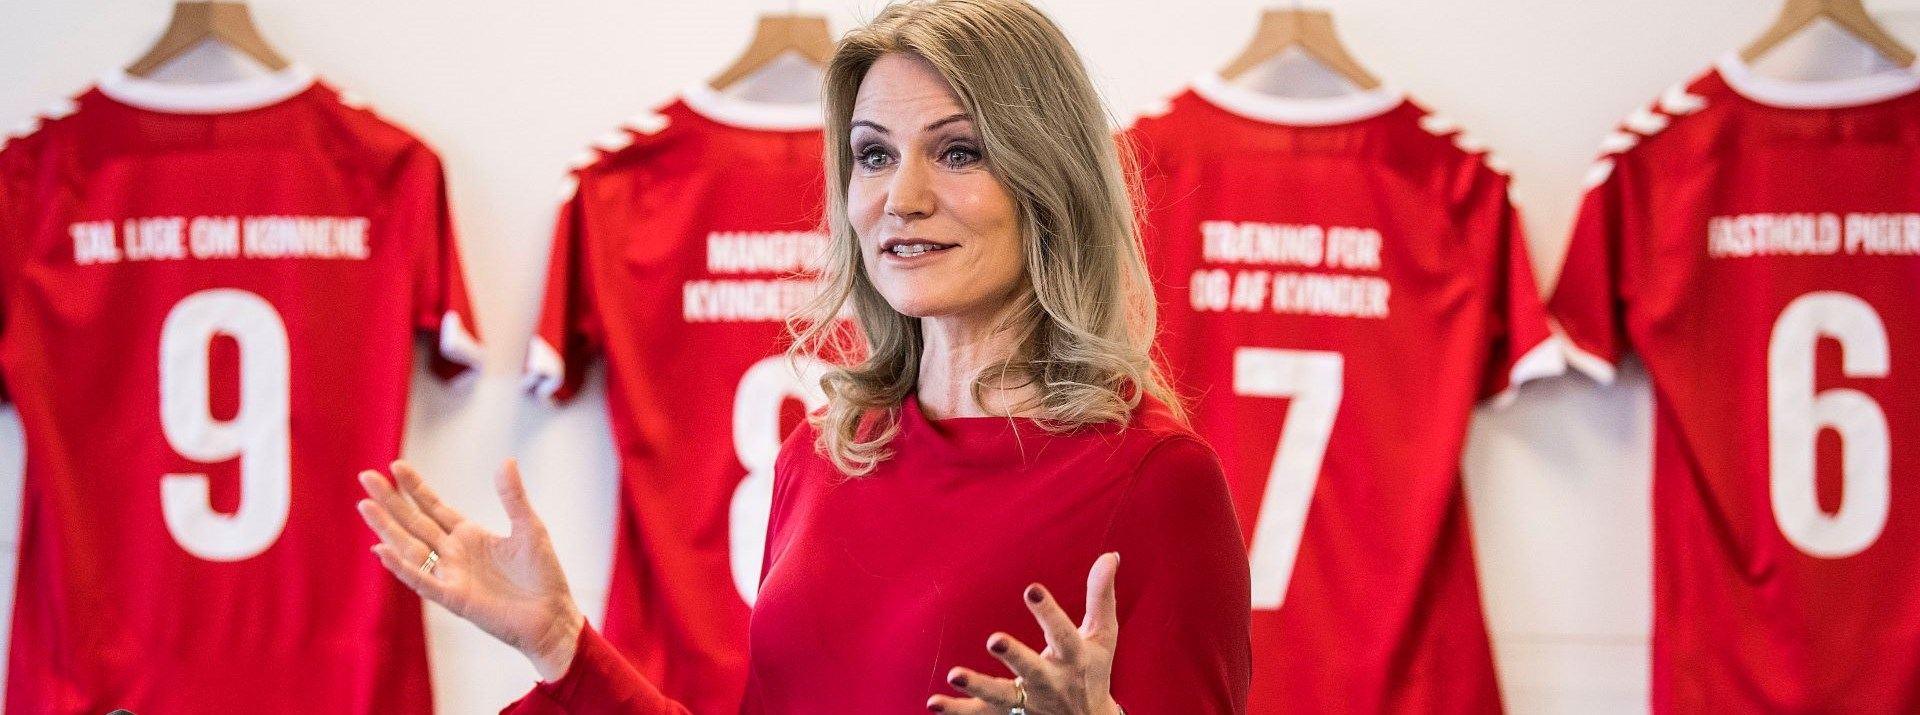 Helle Thorning Schmidt I Spidsen For Ny Komité